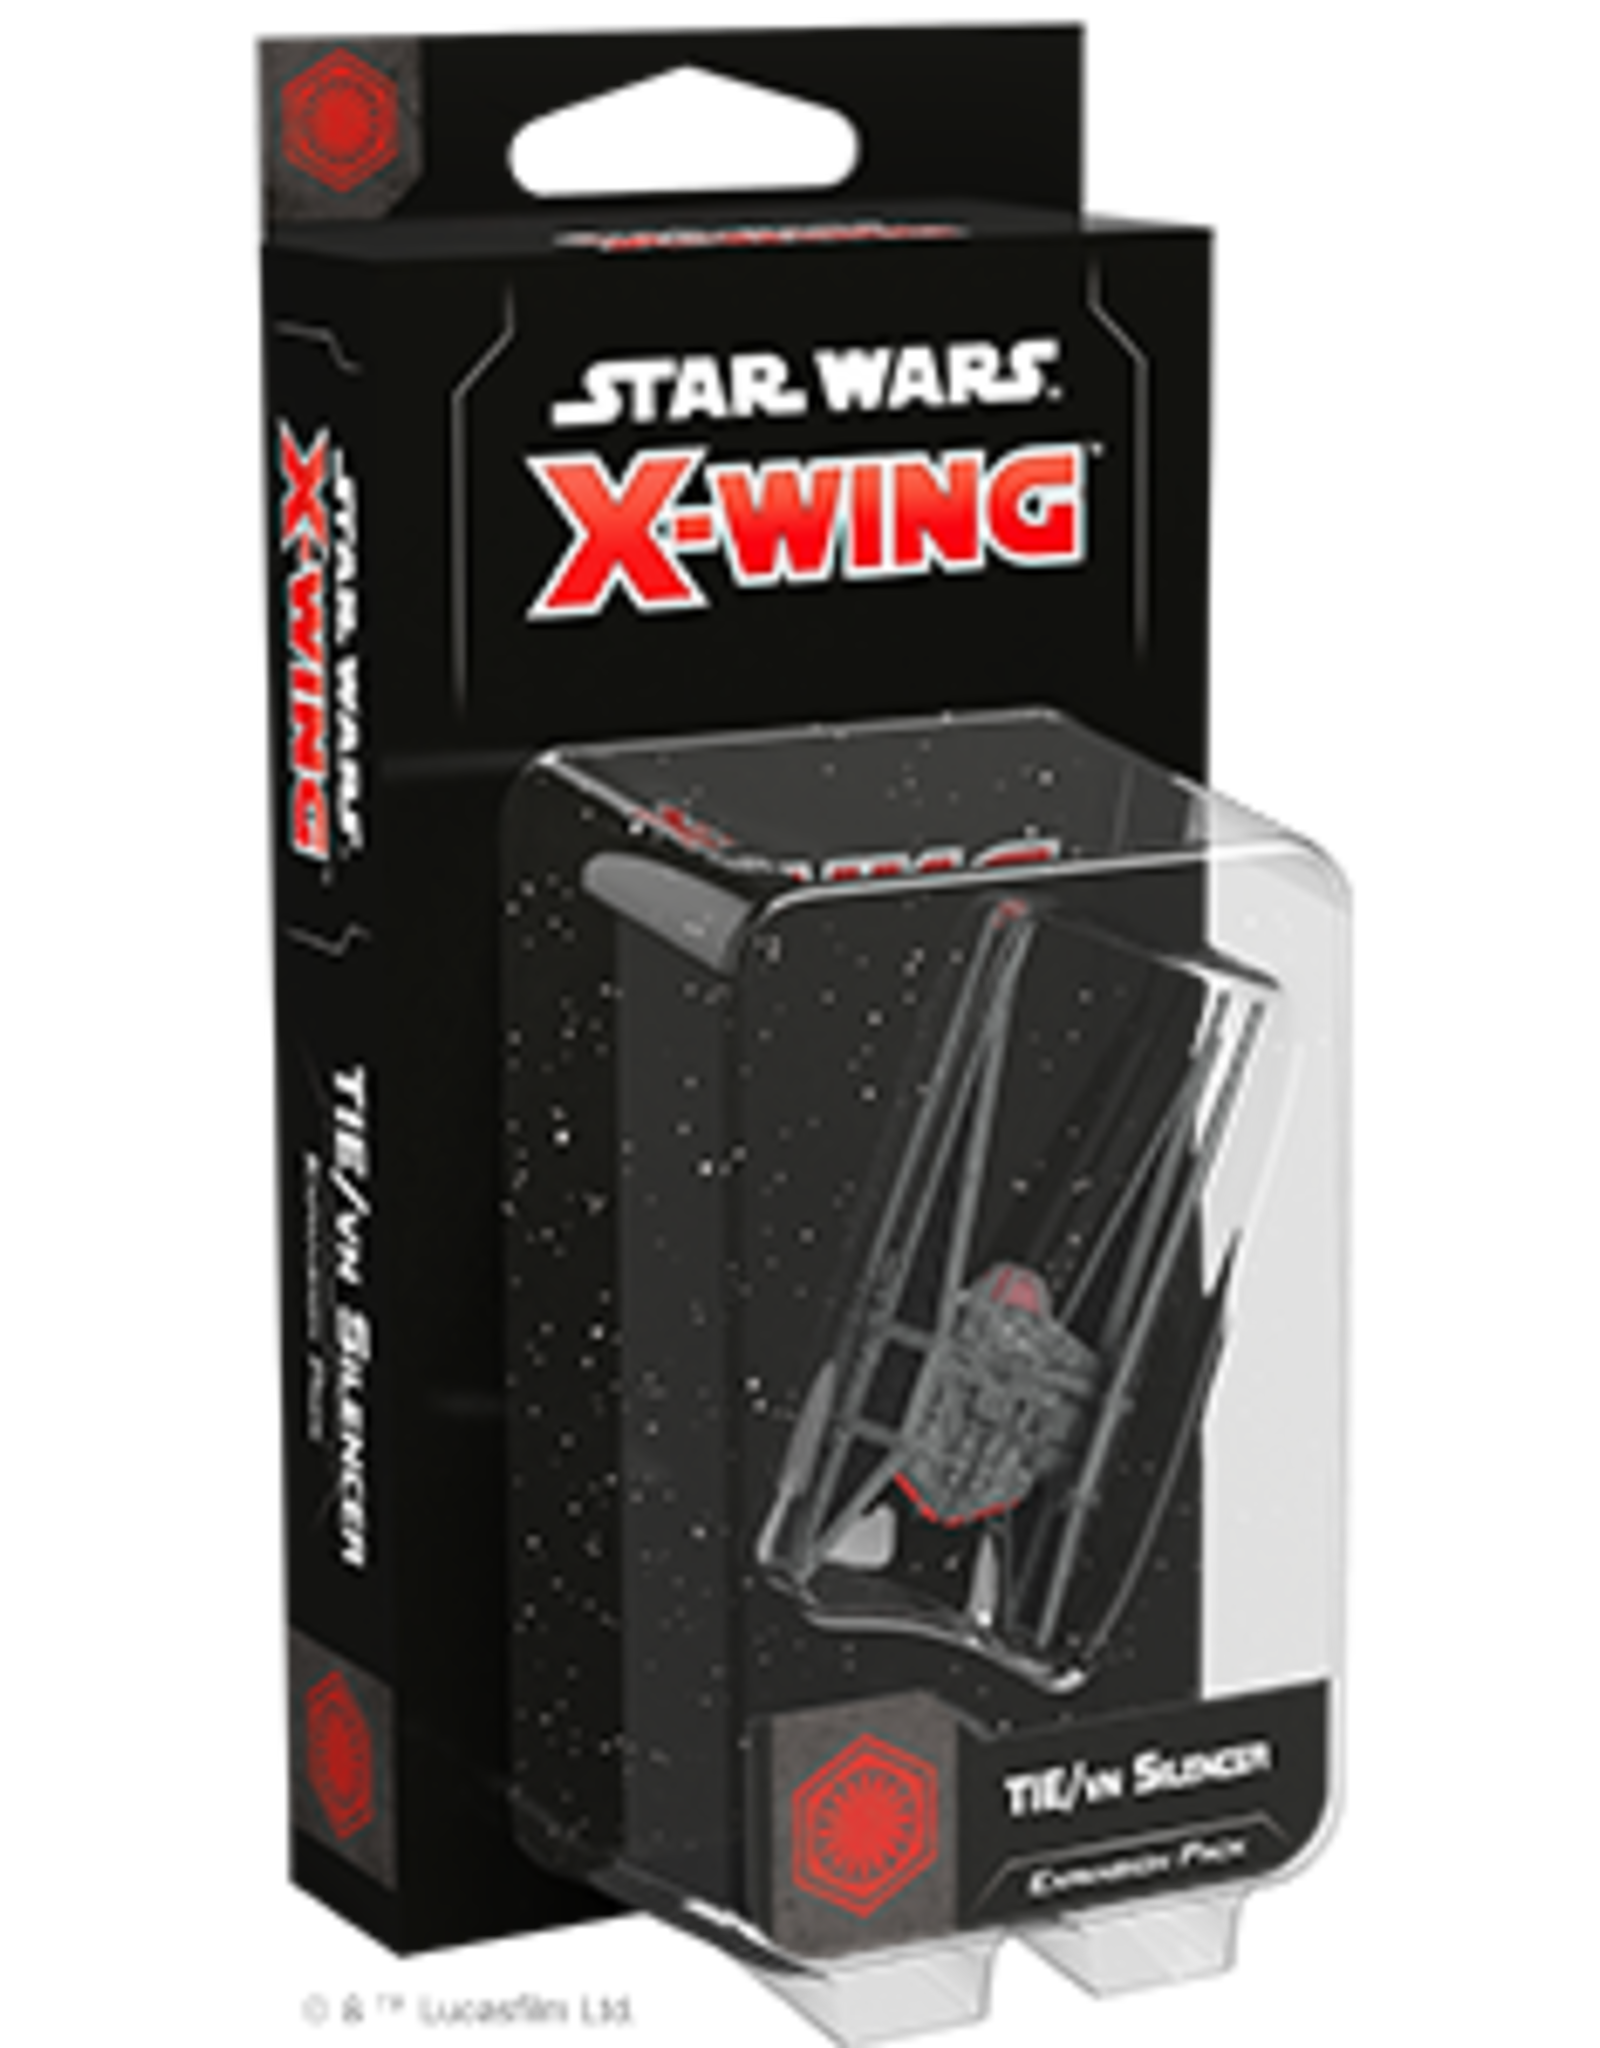 FFG Star Wars X-Wing 2.0: TIE/vn Silencer Expansion Pack